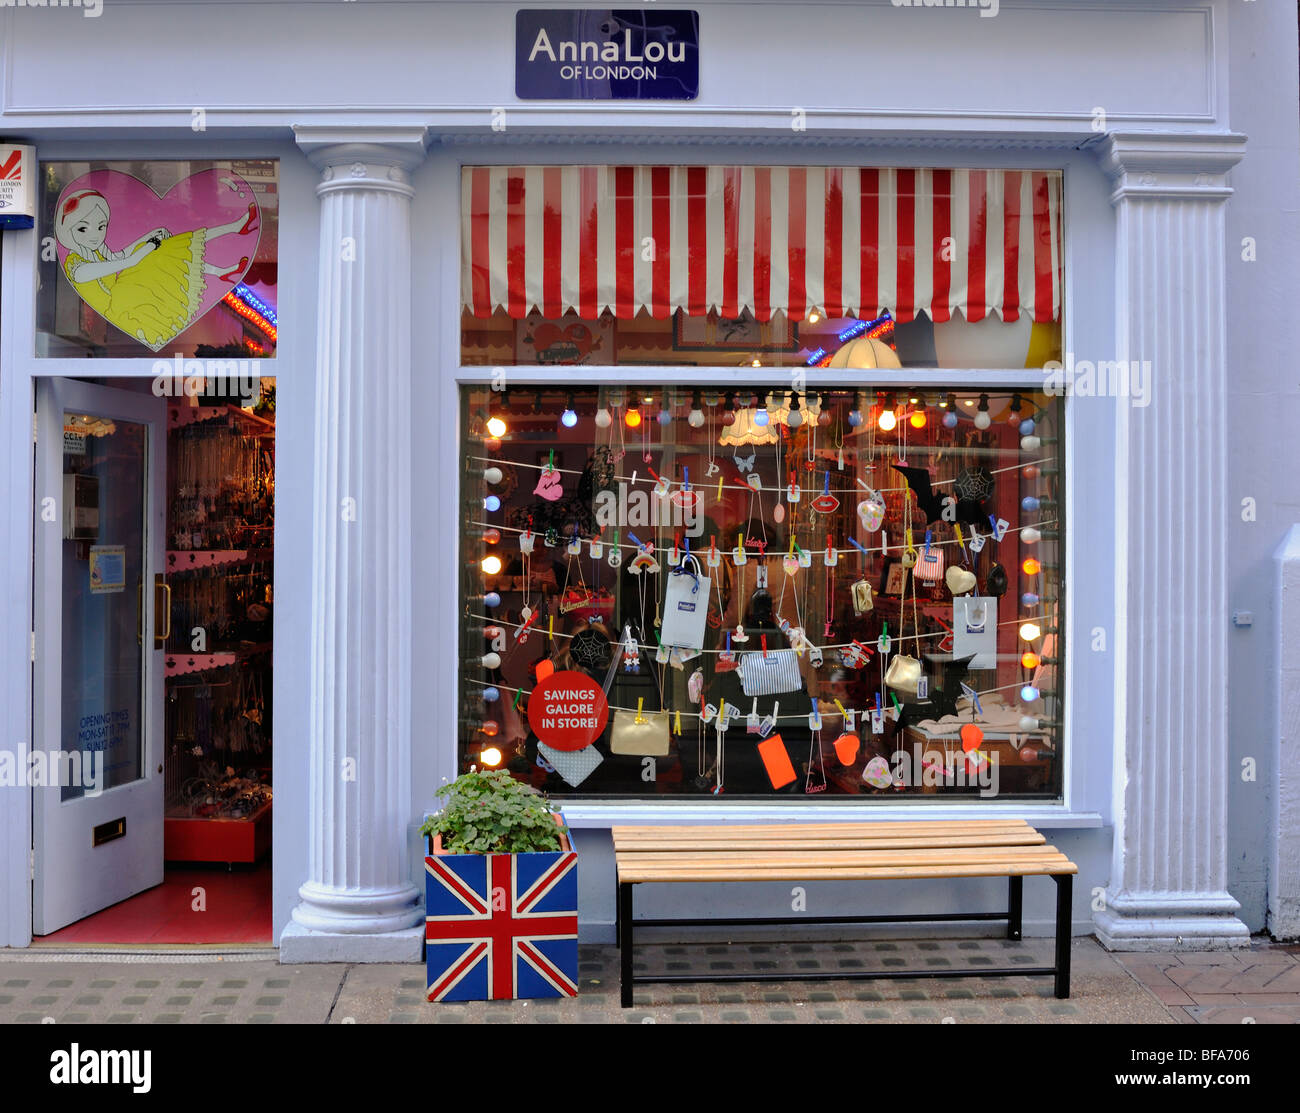 Fashion shop in Carnaby Street, London Stock Photo  26655222 - Alamy 5b785d962be